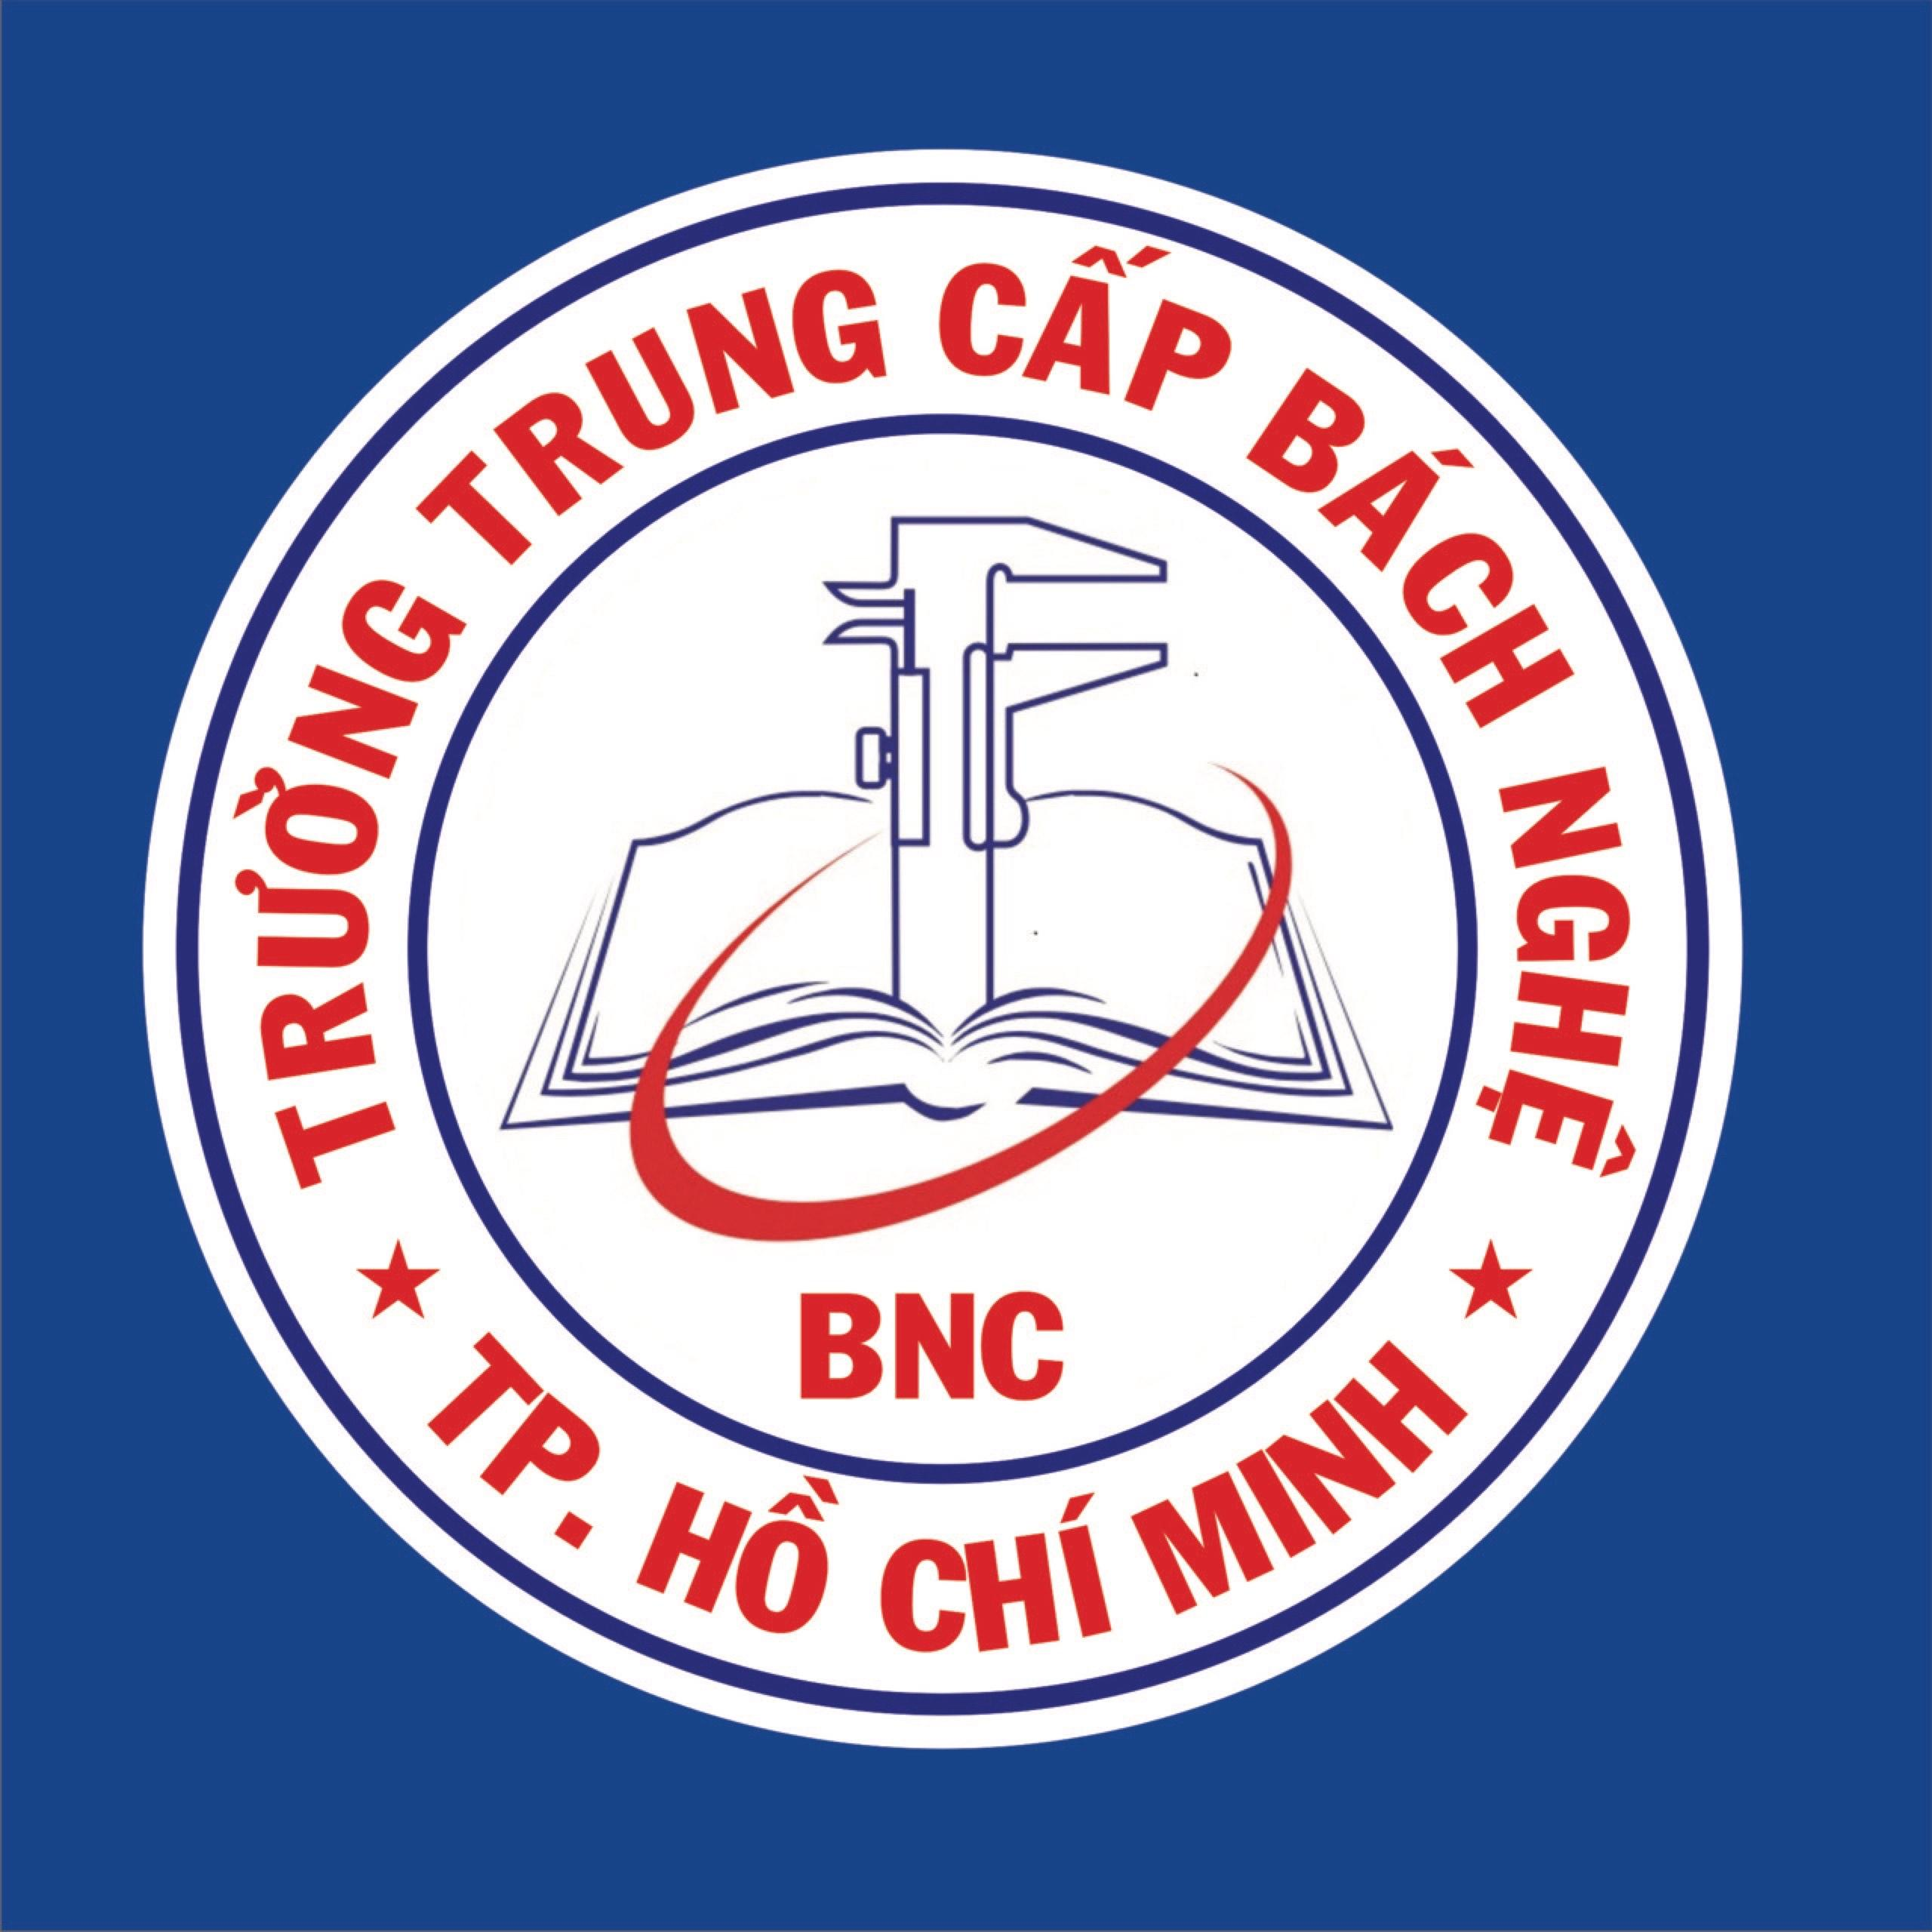 HO CHI MINH CITY BACH NGHE COLLEGES